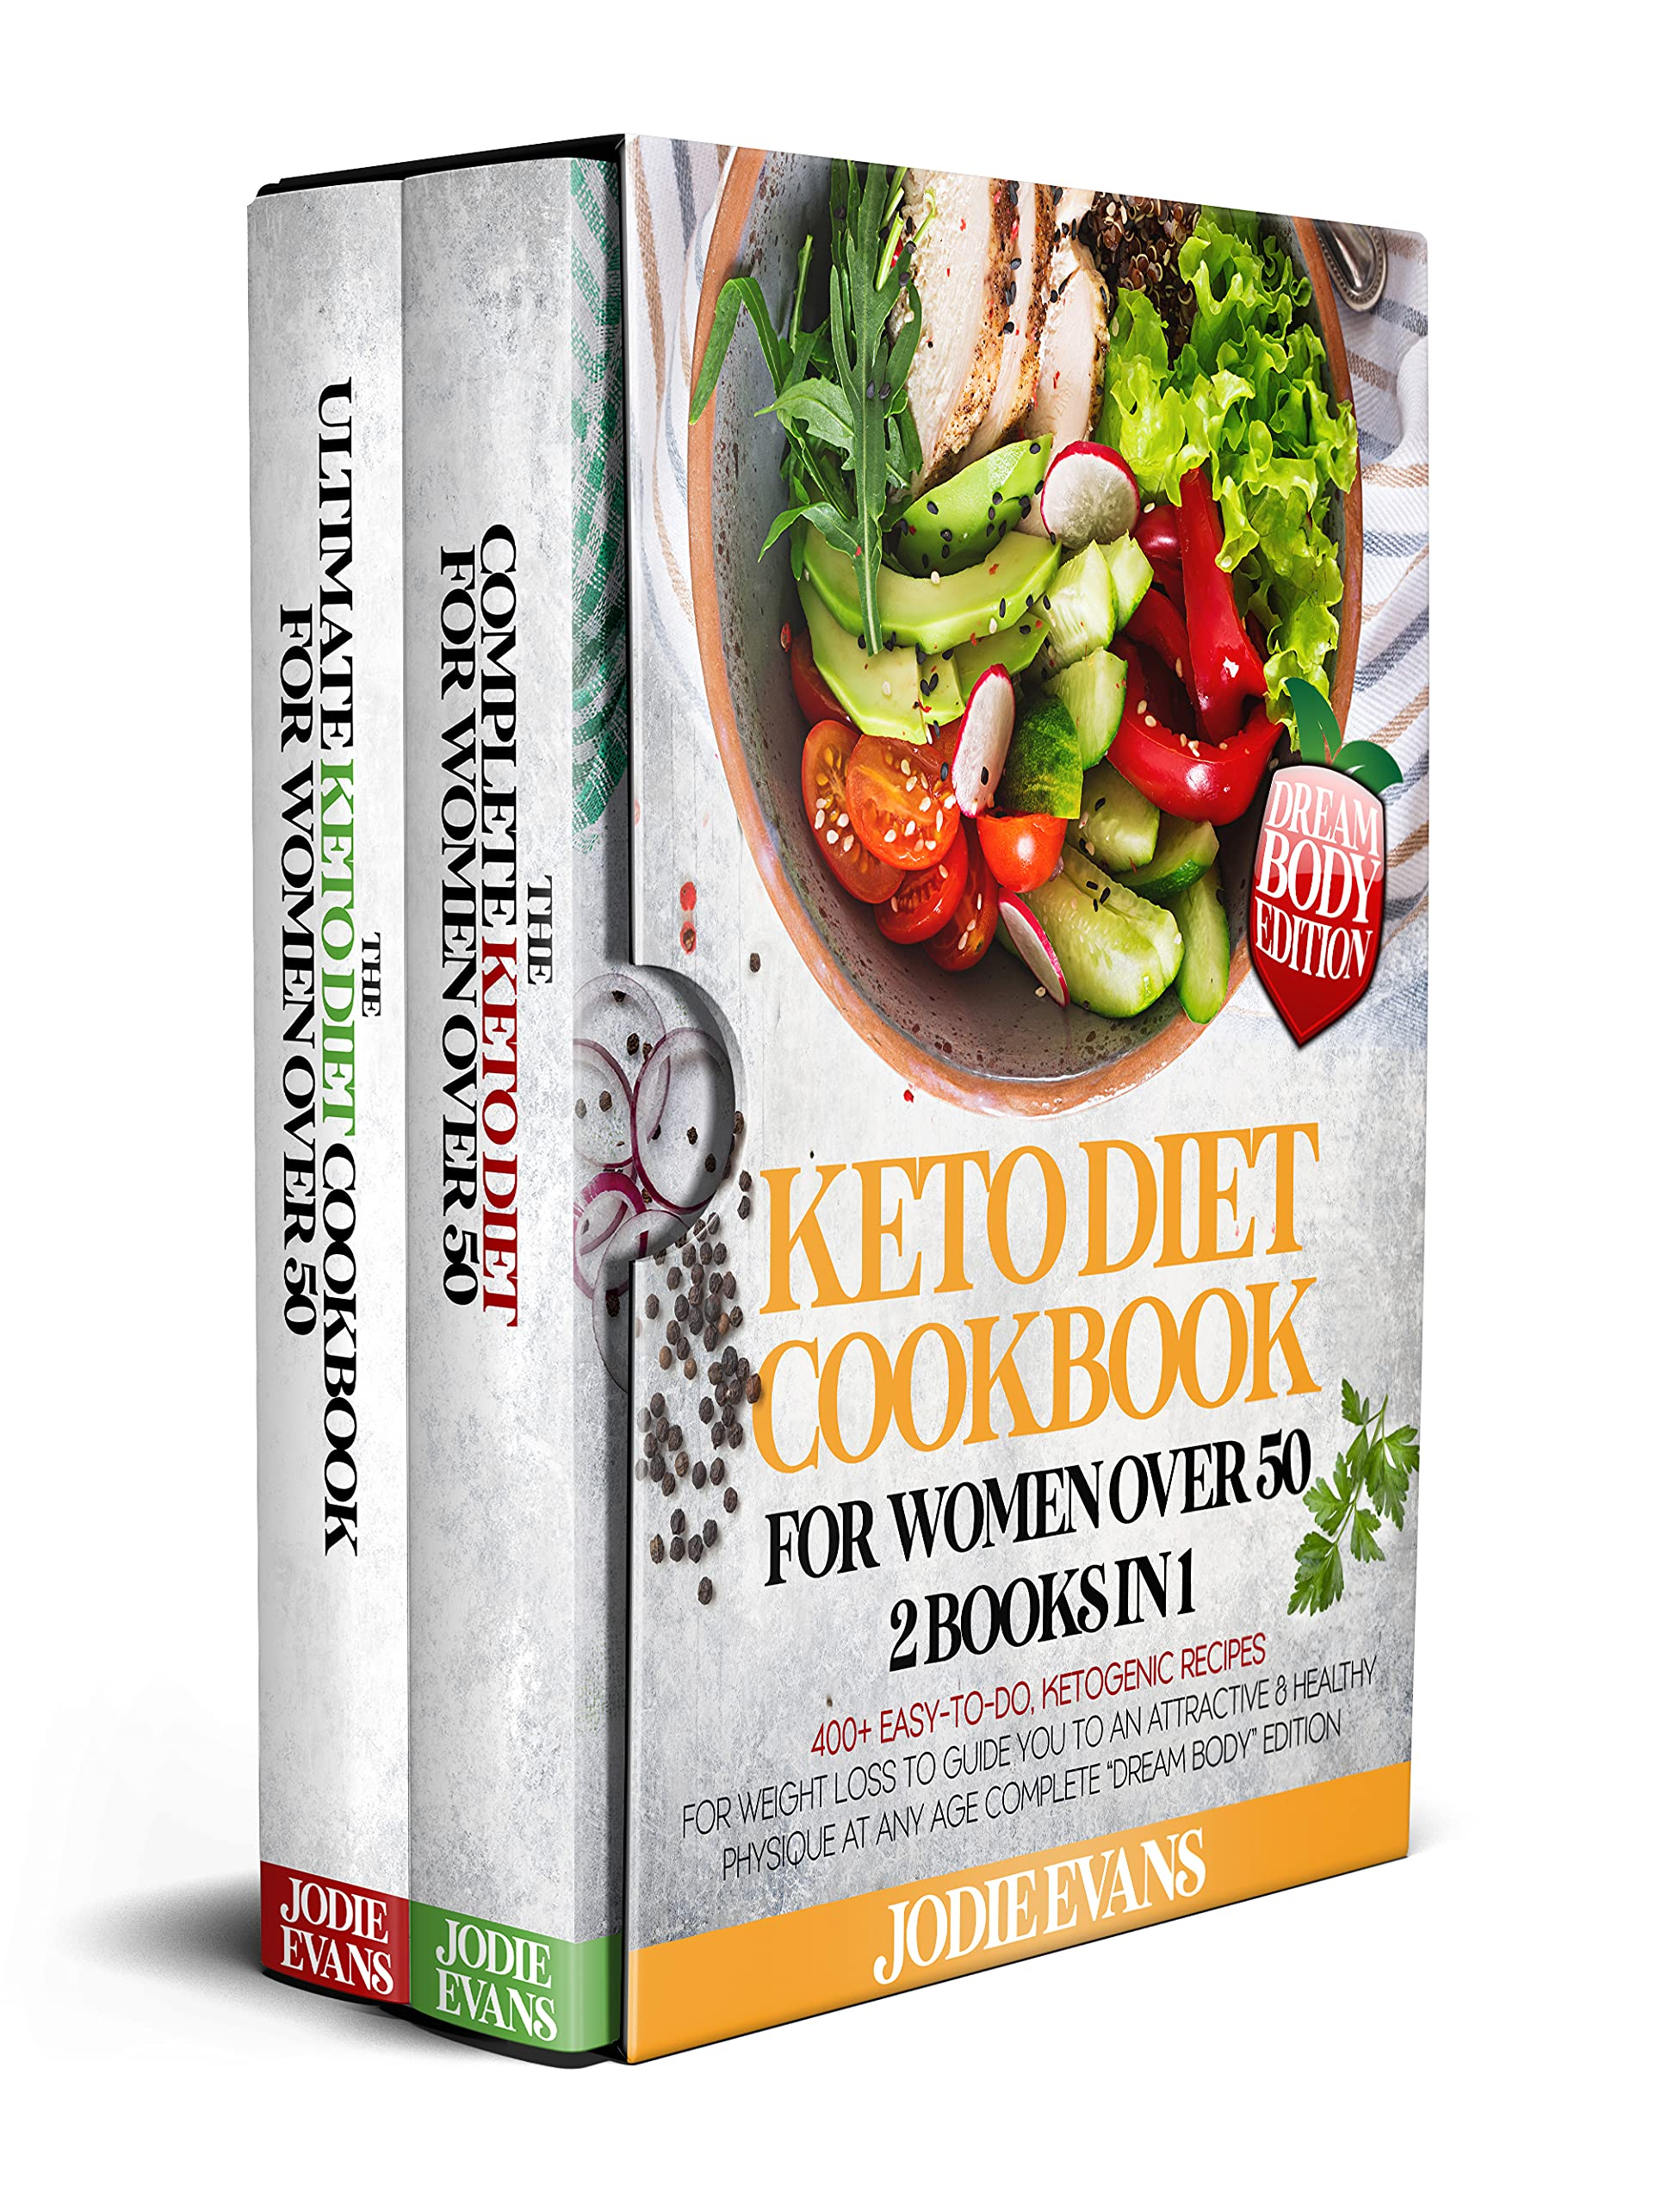 """Keto Diet Cookbook For Women Over 50 : 2 Books In 1: 400+ Easy-To-Do, Ketogenic Recipes For Weight Loss To Guide You To An Attractive & Healthy Physique At Any Age 